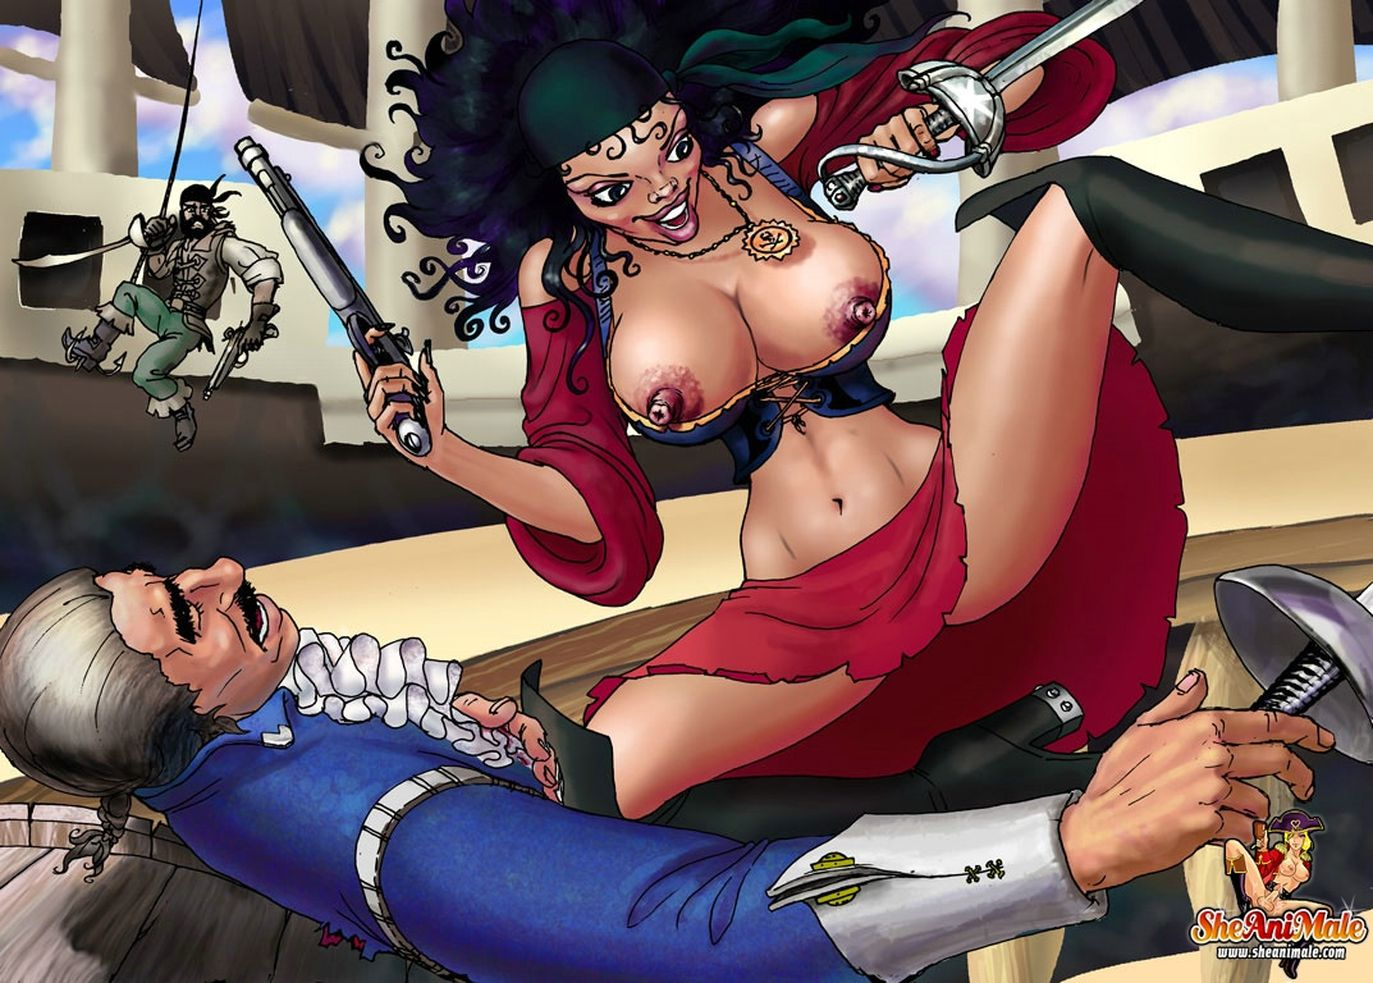 Xxx pirate film fucking pictures hentai girls